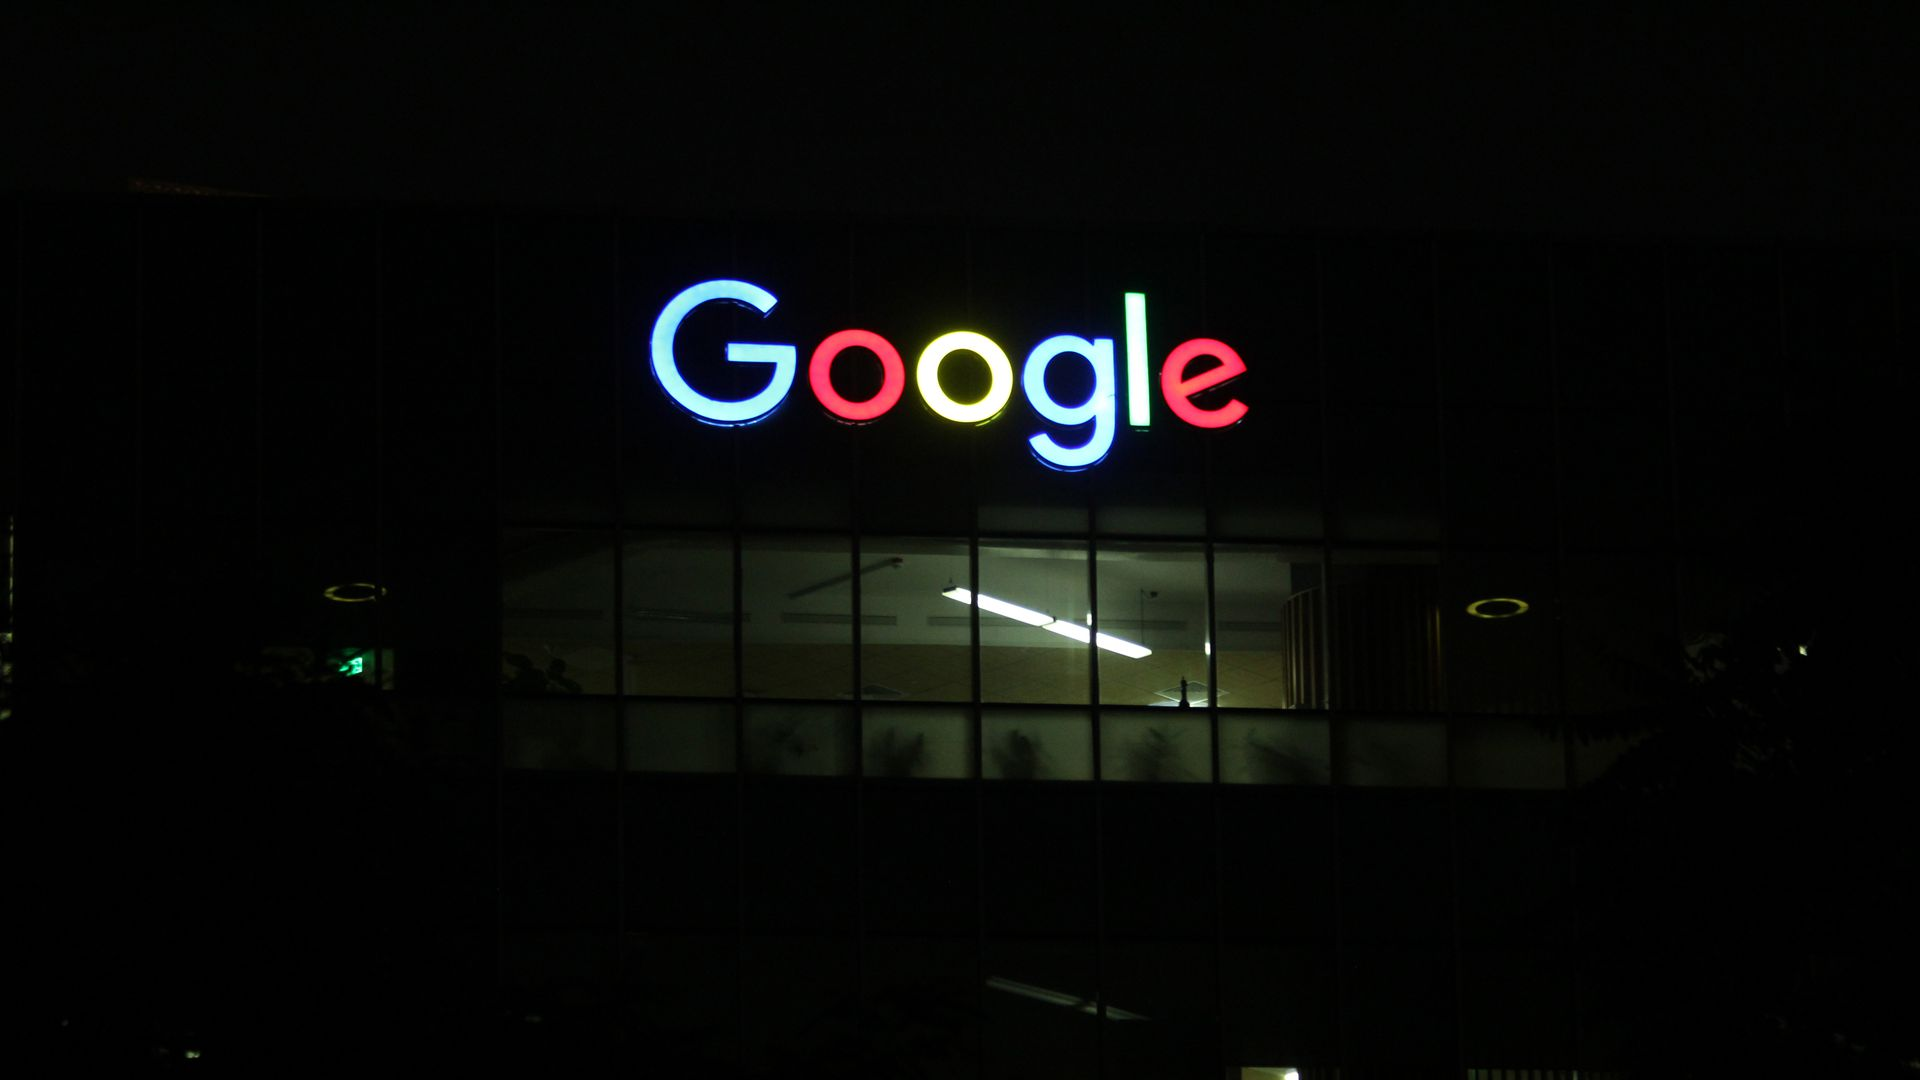 Google logo lit up outside building in the dark